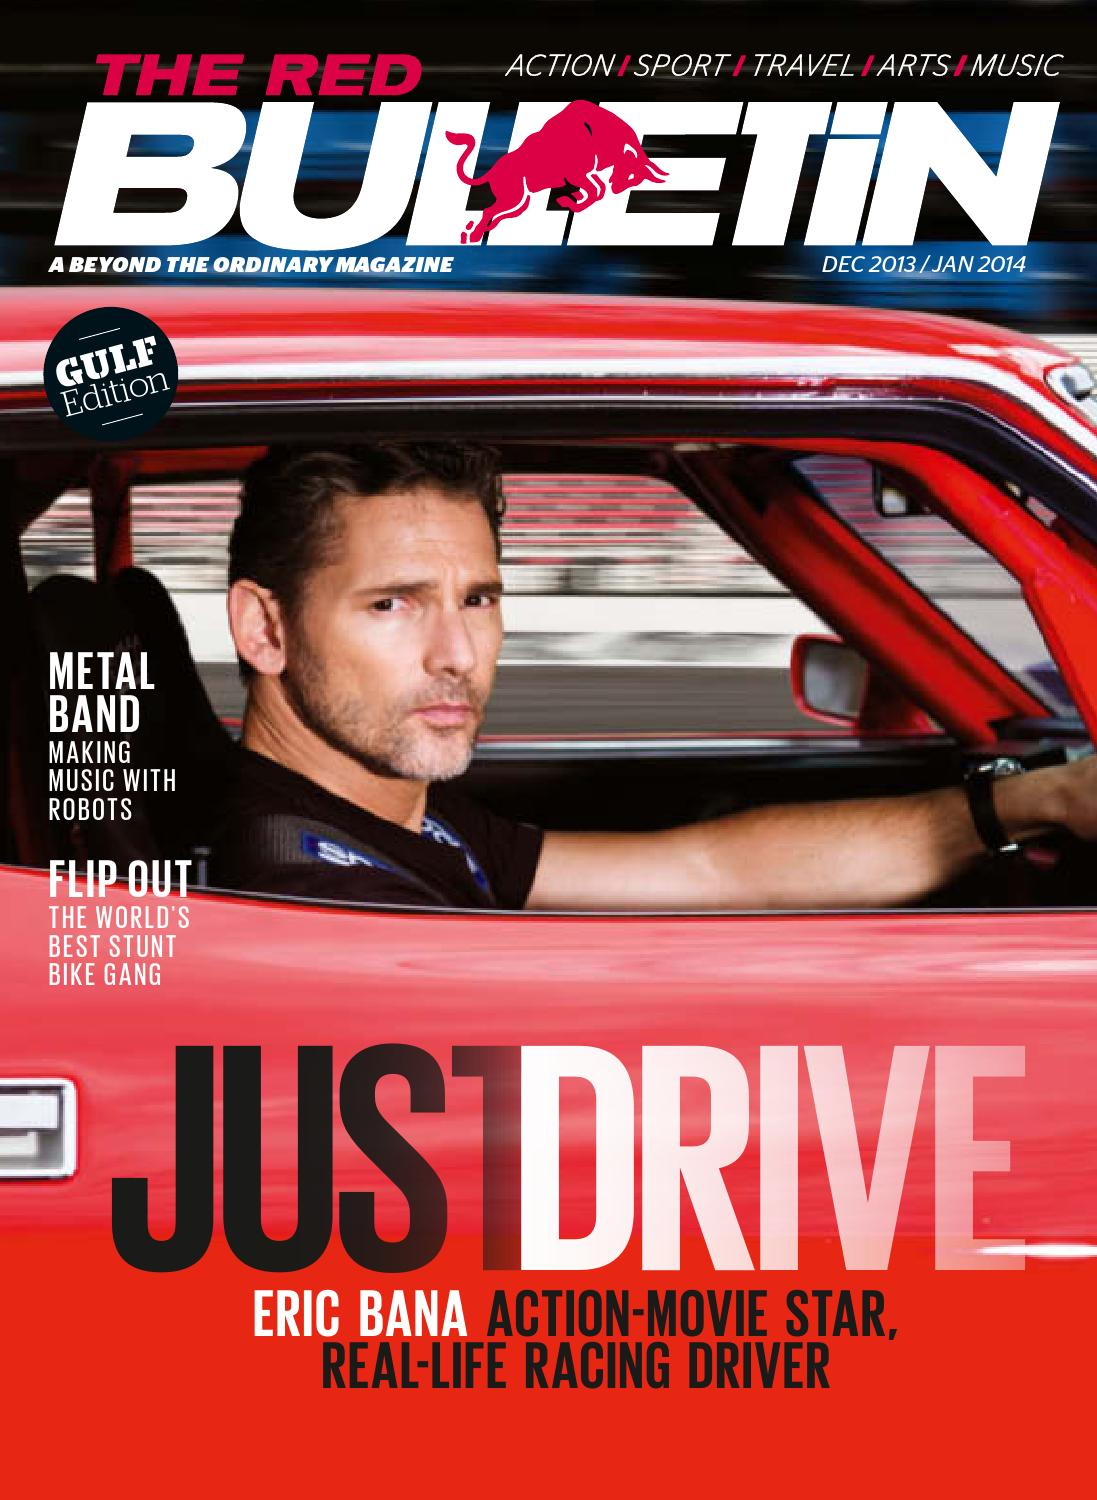 The Red Bulletin December 2013 Kw By Bull Media House Issuu Motorheads Performance Classic Car News Wiring Nightmares Can Be